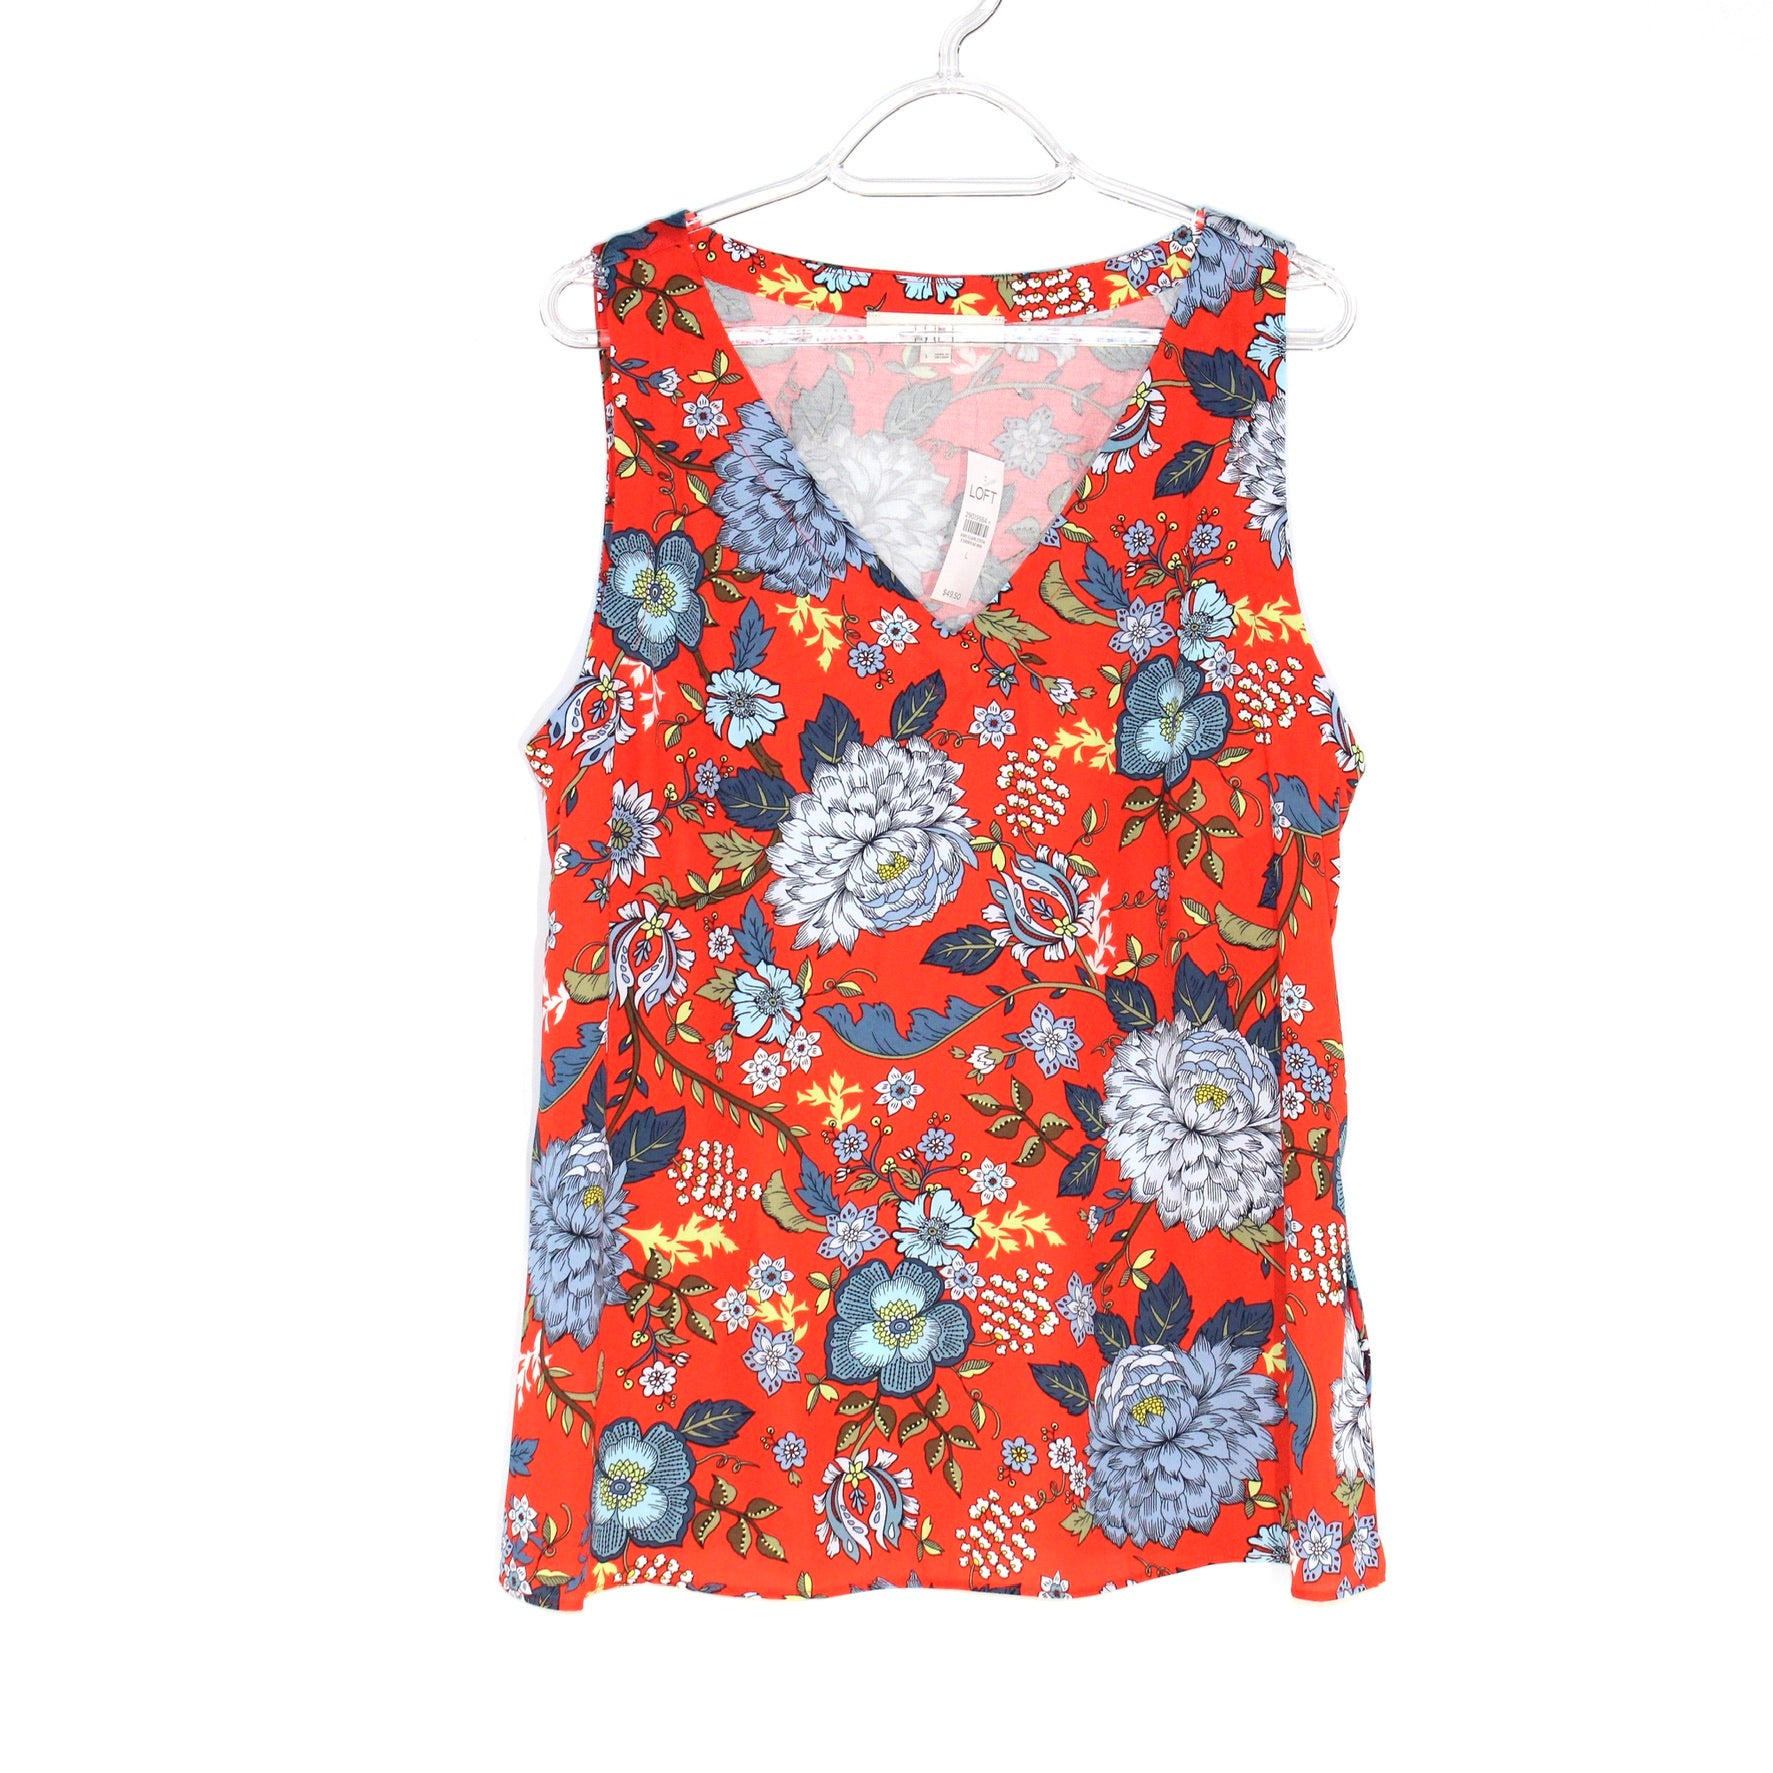 Primary Photo - BRAND: ANN TAYLOR LOFT <BR>STYLE: TOP SLEEVELESS <BR>COLOR: FLORAL <BR>SIZE: L <BR>SKU: 262-26275-58692